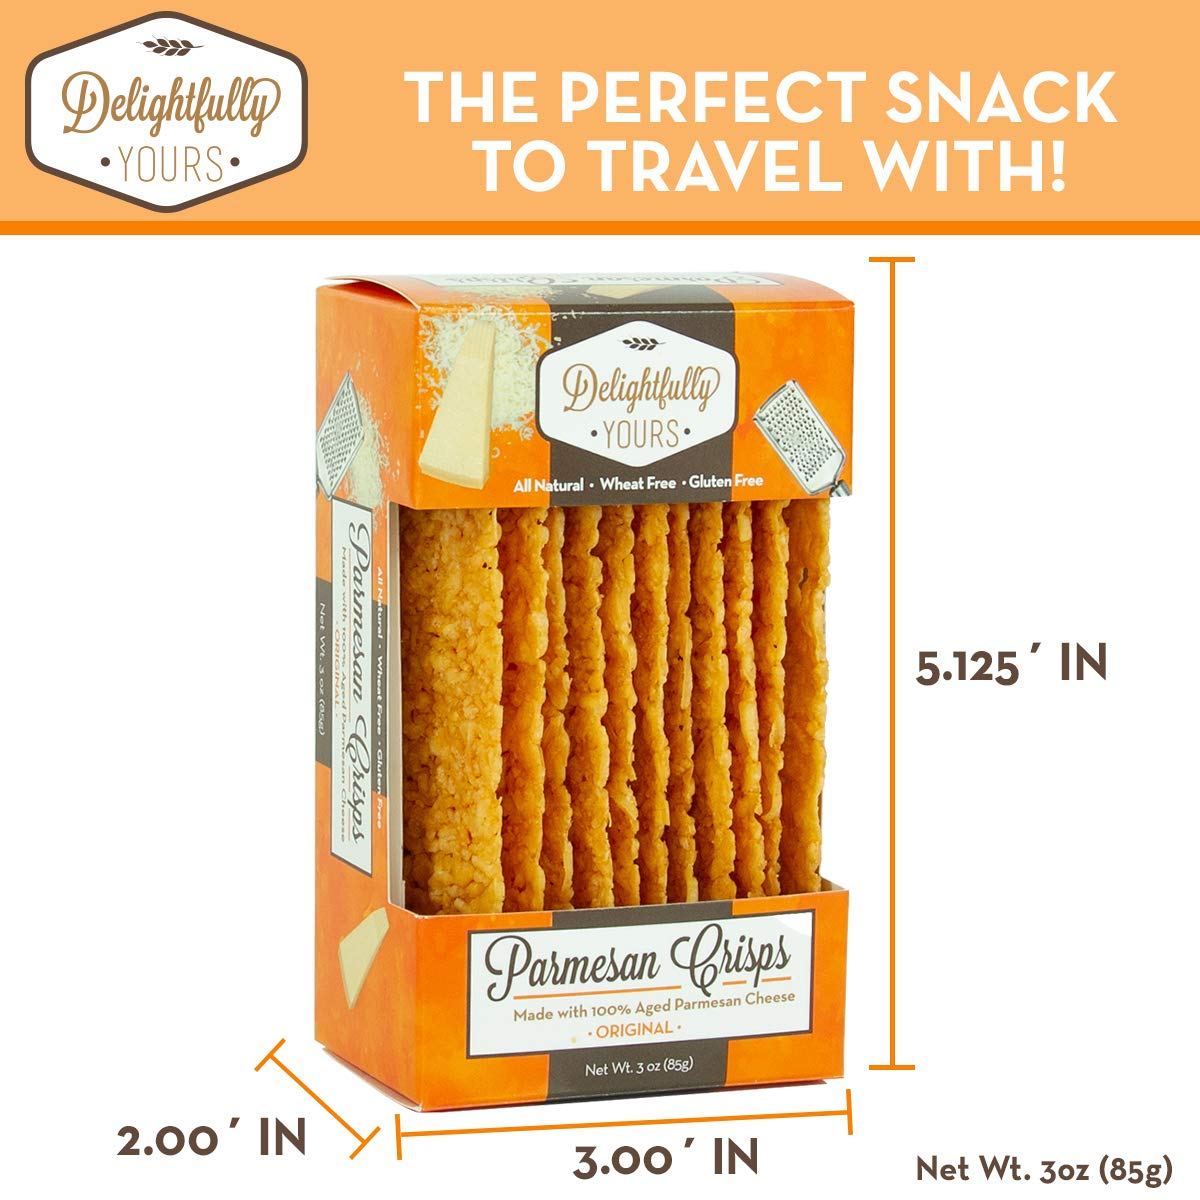 Delightfully Yours: Low Carb Parmesan Cheese Crisps {ORIGINAL Flavor} 100% aged - Flavorful Handmade - Keto Friendly Snack - All Natural - Wheat Free - Gluten Free - Protein Packed 12 OZ (4 PACK) by Delightfully Yours (Image #2)